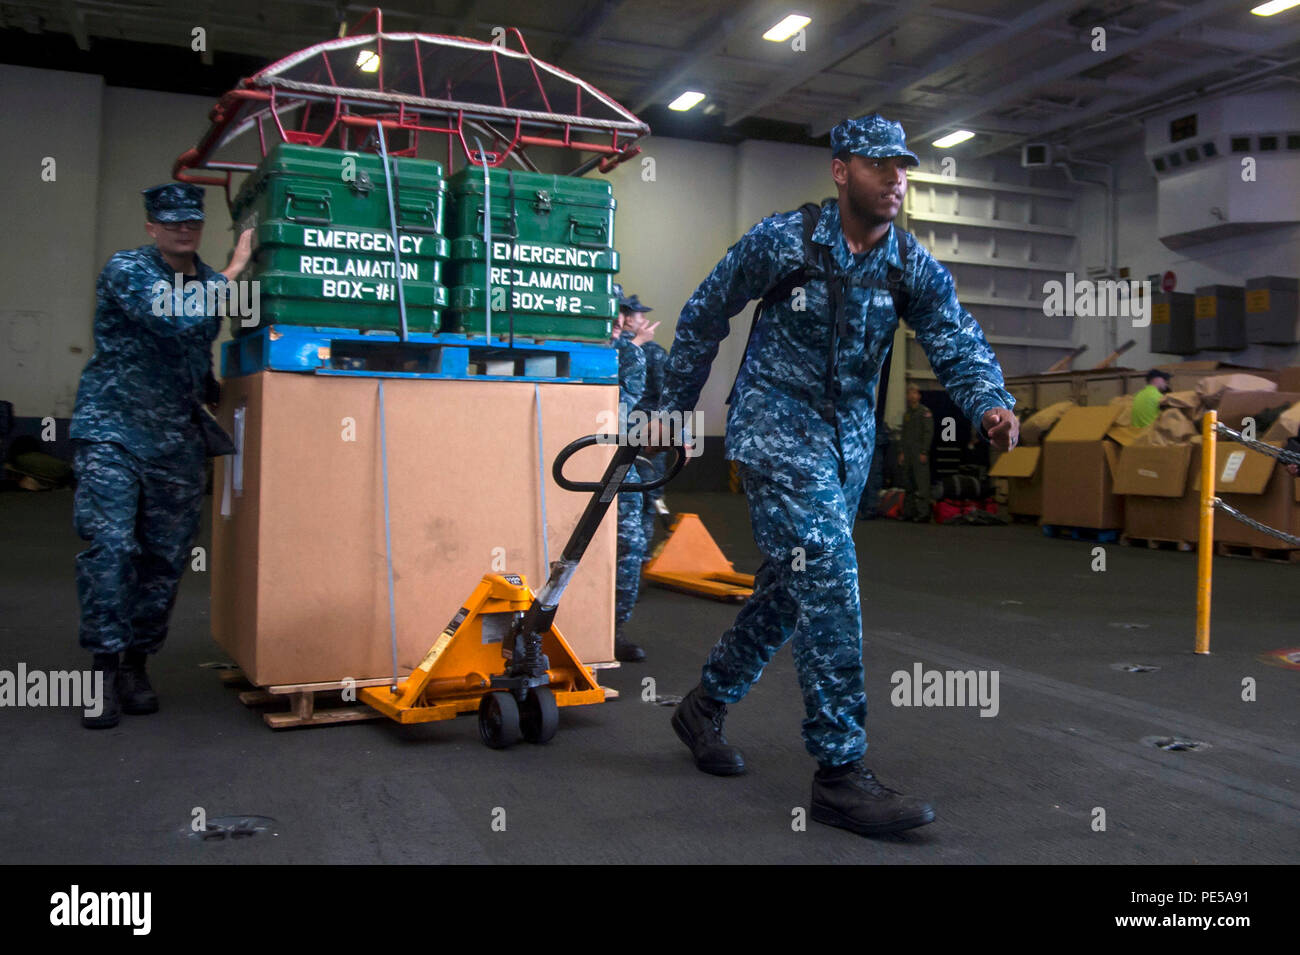 """151001-N-QH848-007 NORFOLK (Oct. 1, 2015) Aviation Electrician's Mate 3rd Class D. Fuger, left, and Aviation Machinist's Mate Airman D. Dolloson, assigned to the """"Fist of the Fleet"""" of Strike Fighter Squadron (VFA) 25, move equipment through the hangar bay of aircraft carrier USS Harry S. Truman (CVN 75). Truman is at sea to sortie in response to Hurricane Joaquin. (U.S. Navy photo by Mass Communication Specialist 3rd Class A. A. Cruz/Released) Stock Photo"""